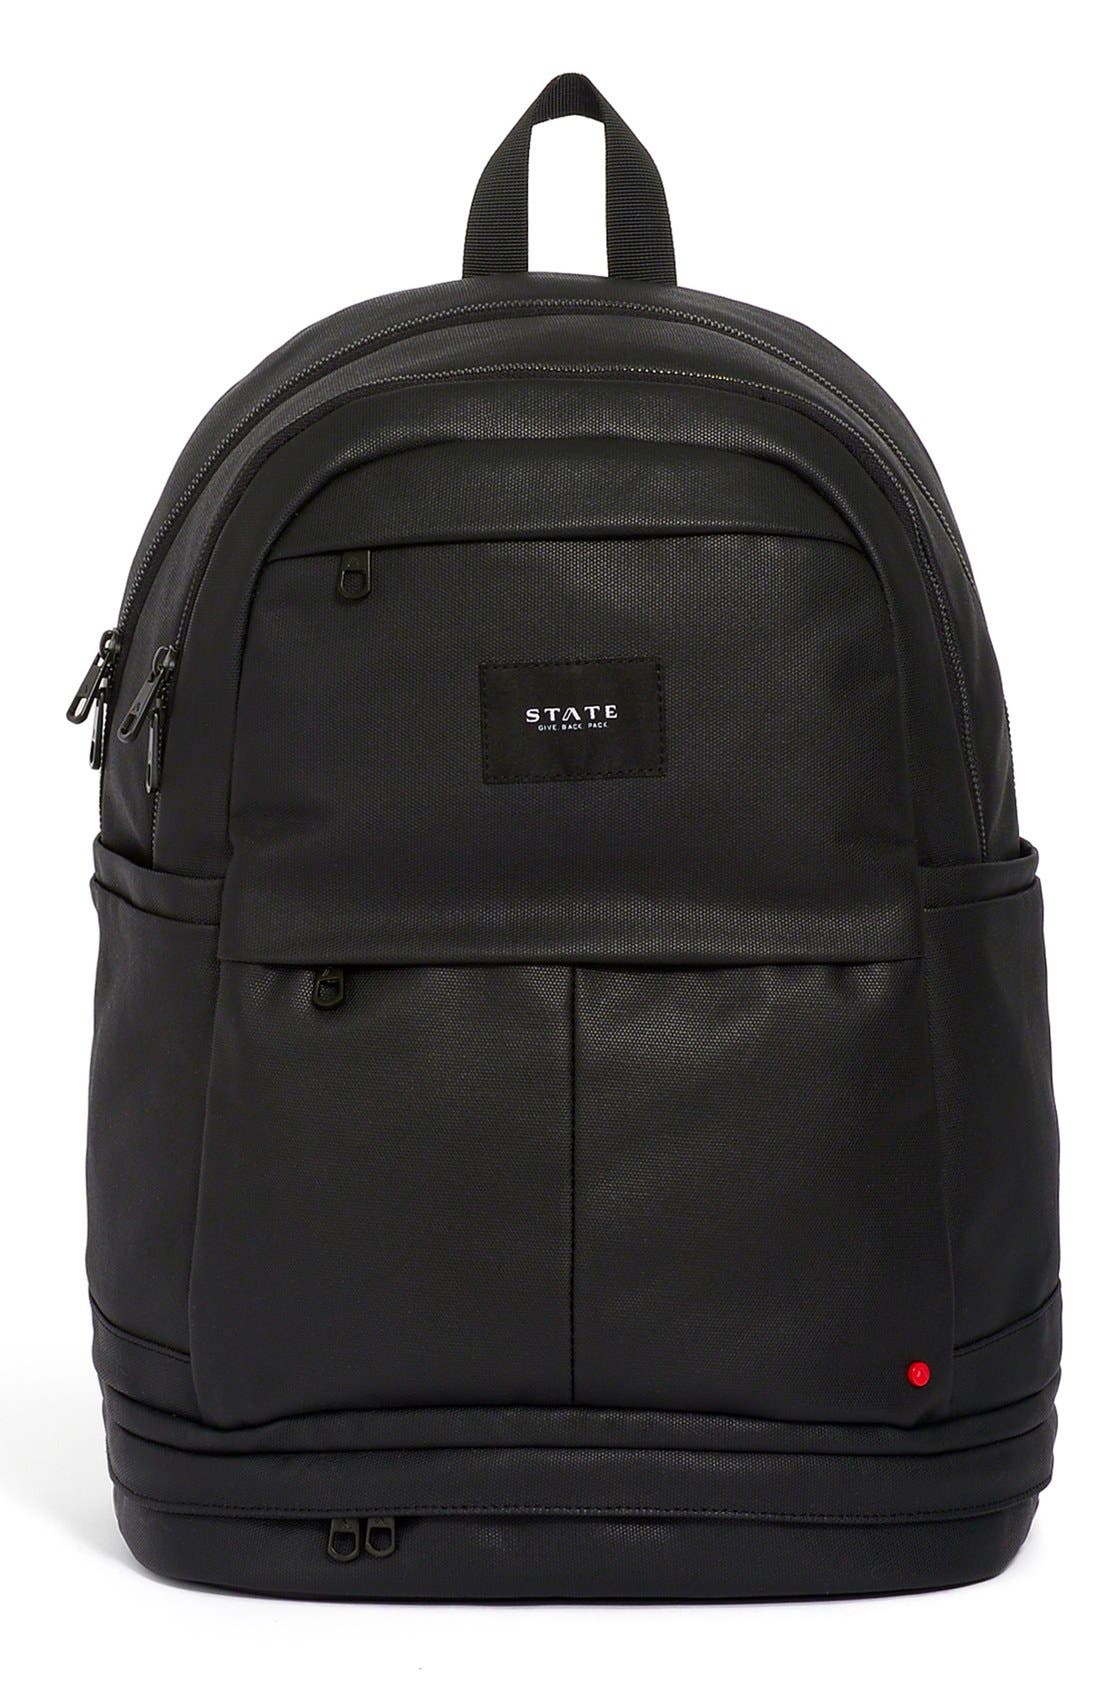 STATE BAGS 'Lenox' Backpack, Main, color, 001